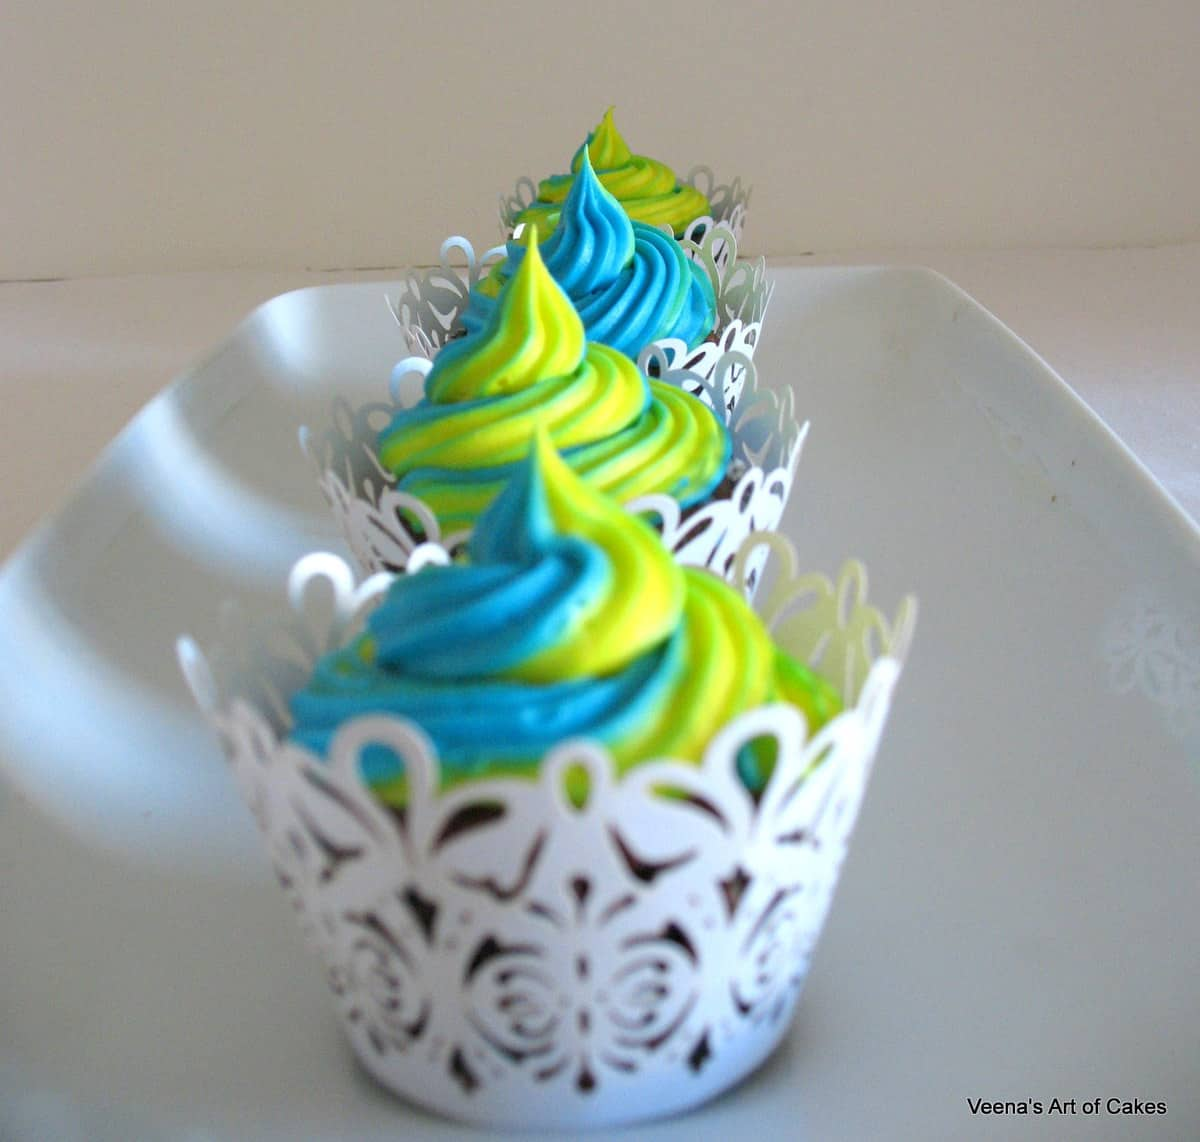 cupcakes with swirls